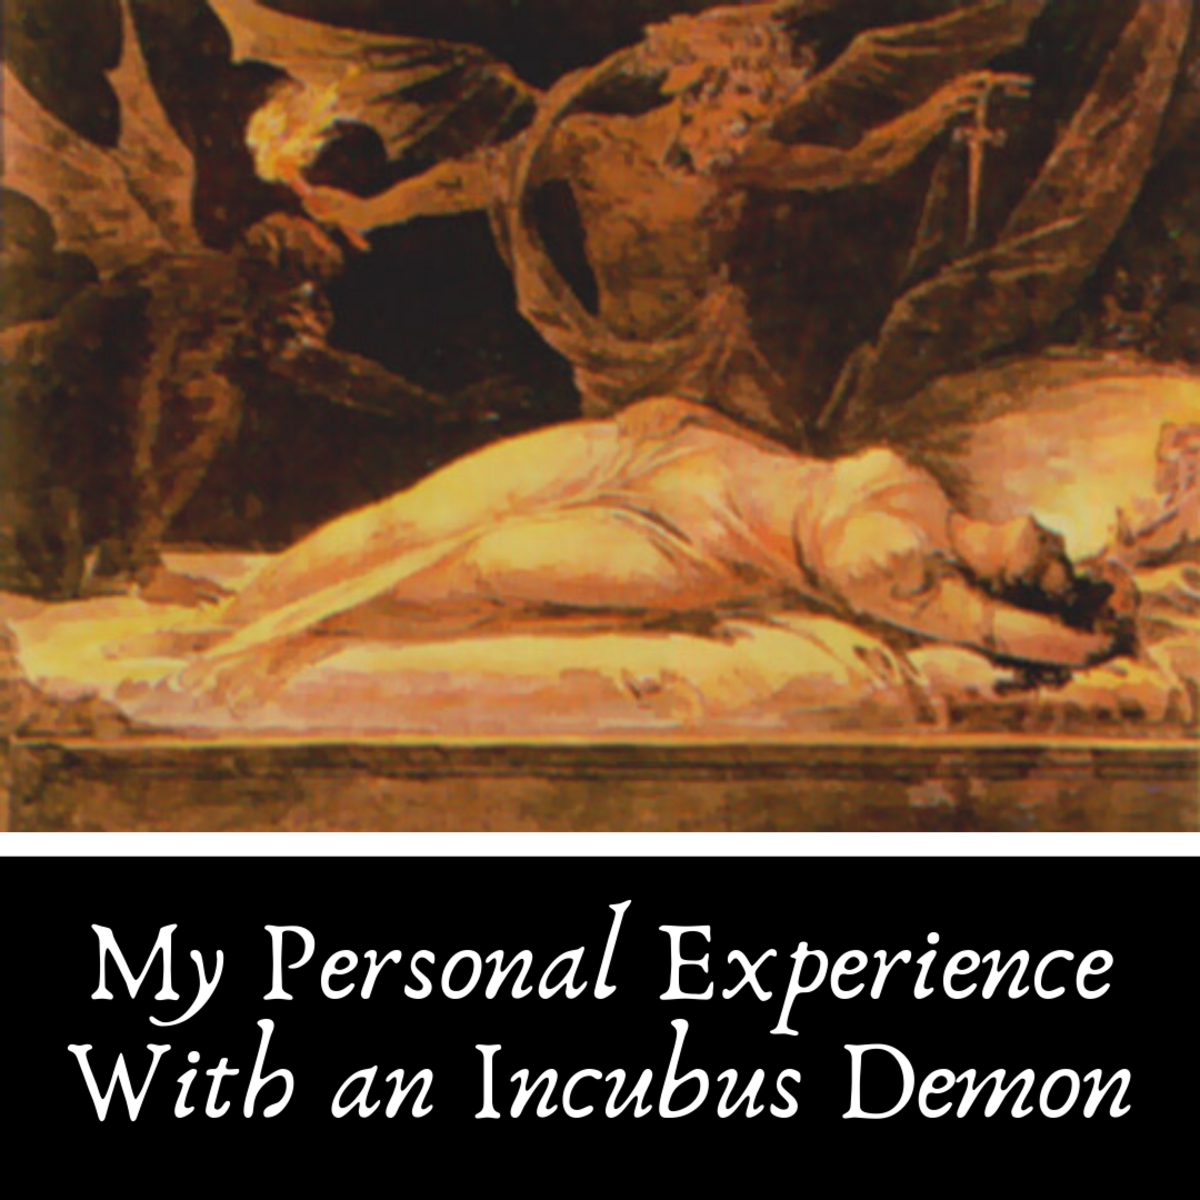 Read on to hear my story of exorcising an incubus demon from my life.